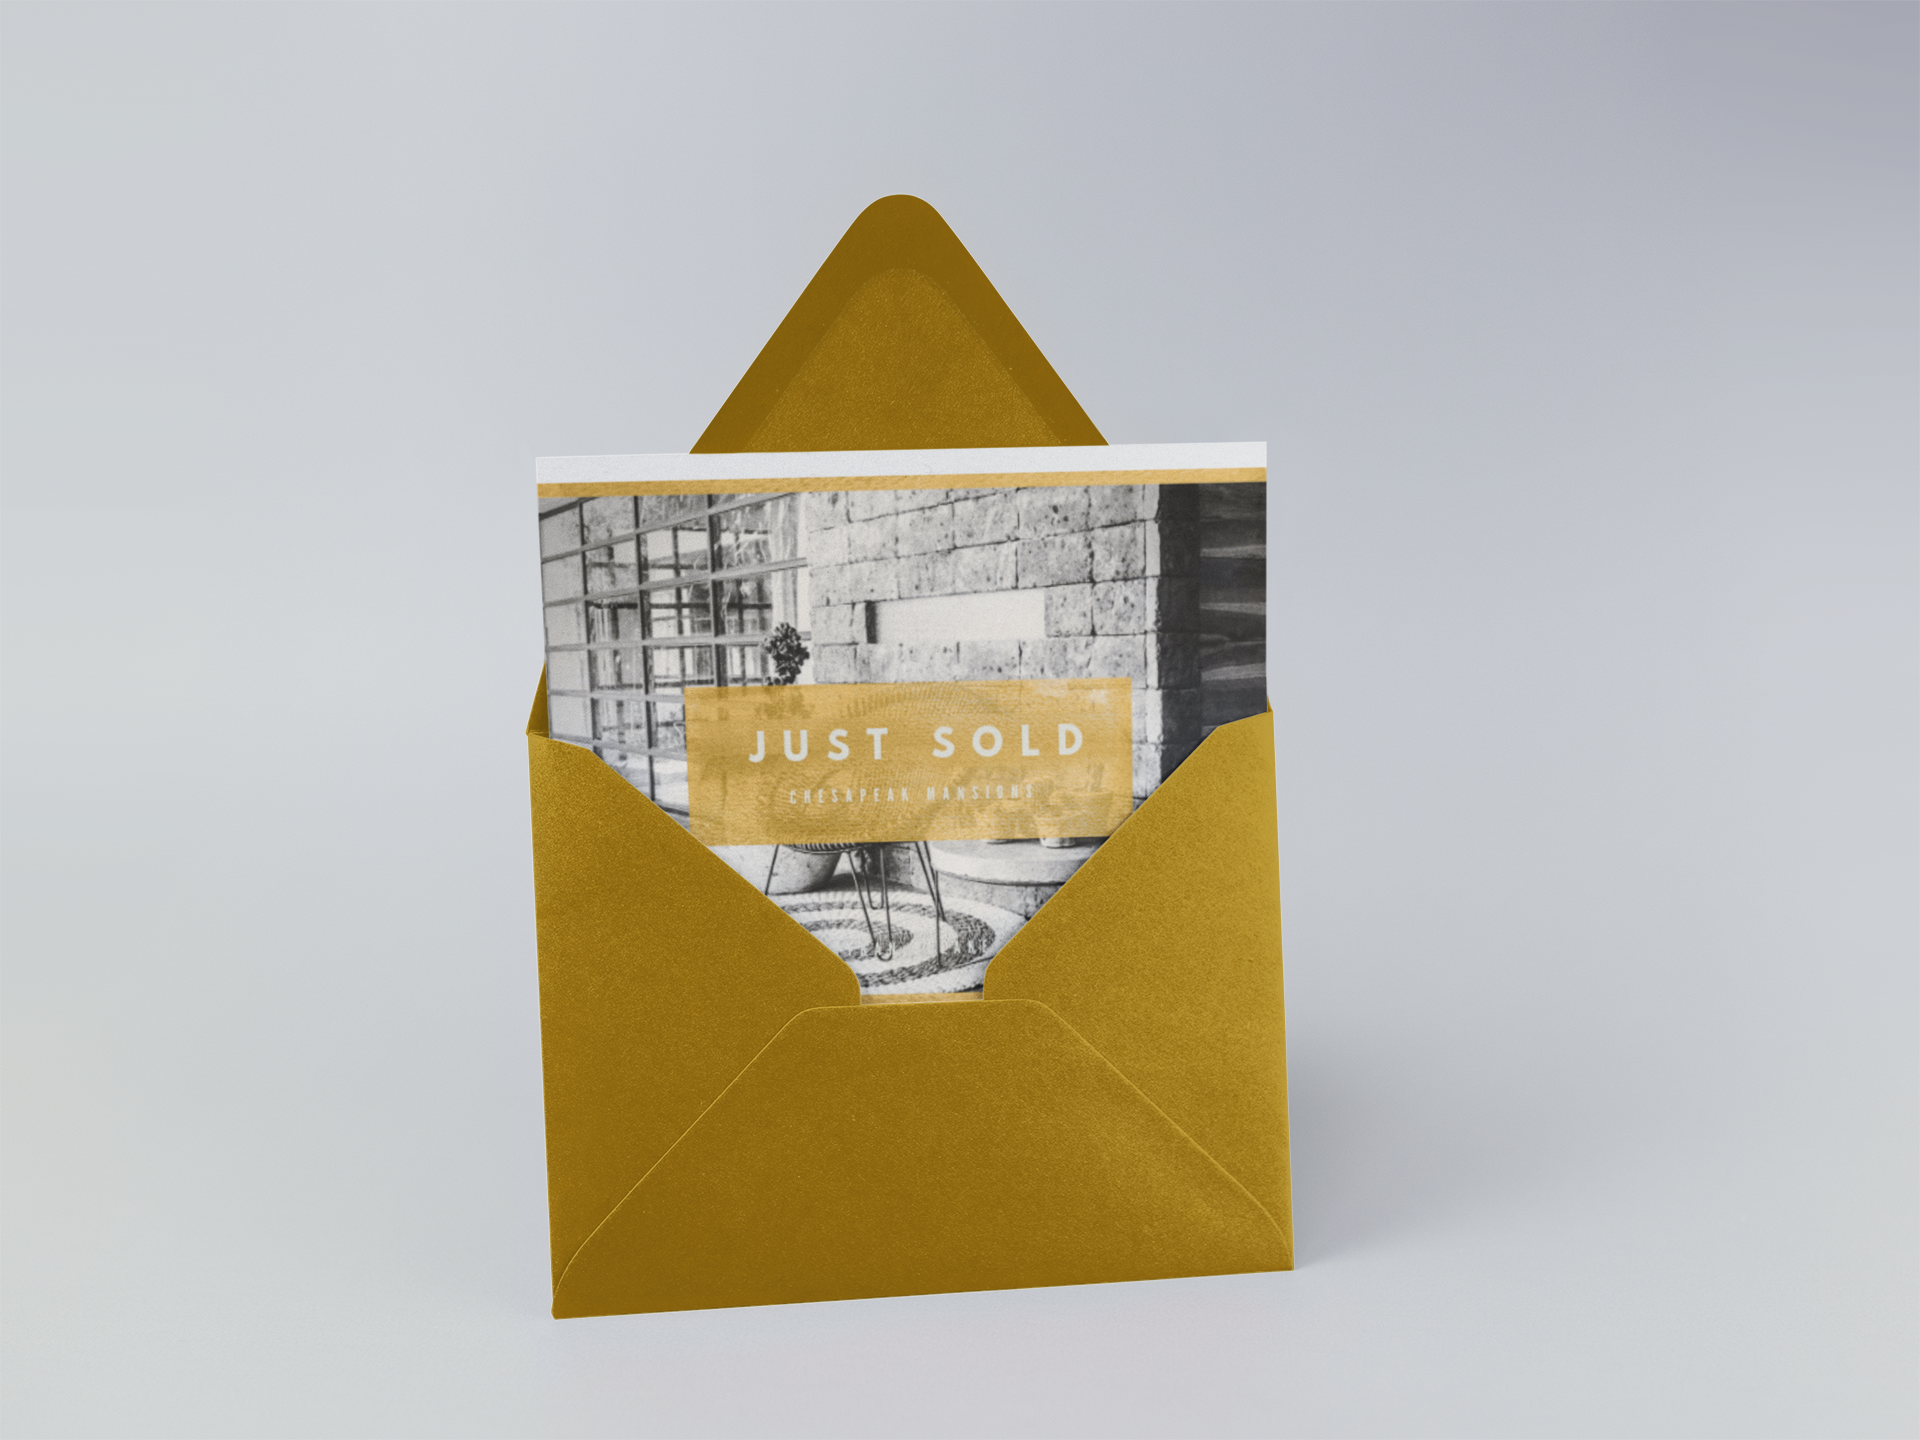 invitation-card-in-an-envelope-template-standing-on-a-solid-surface-a15086 (2).png